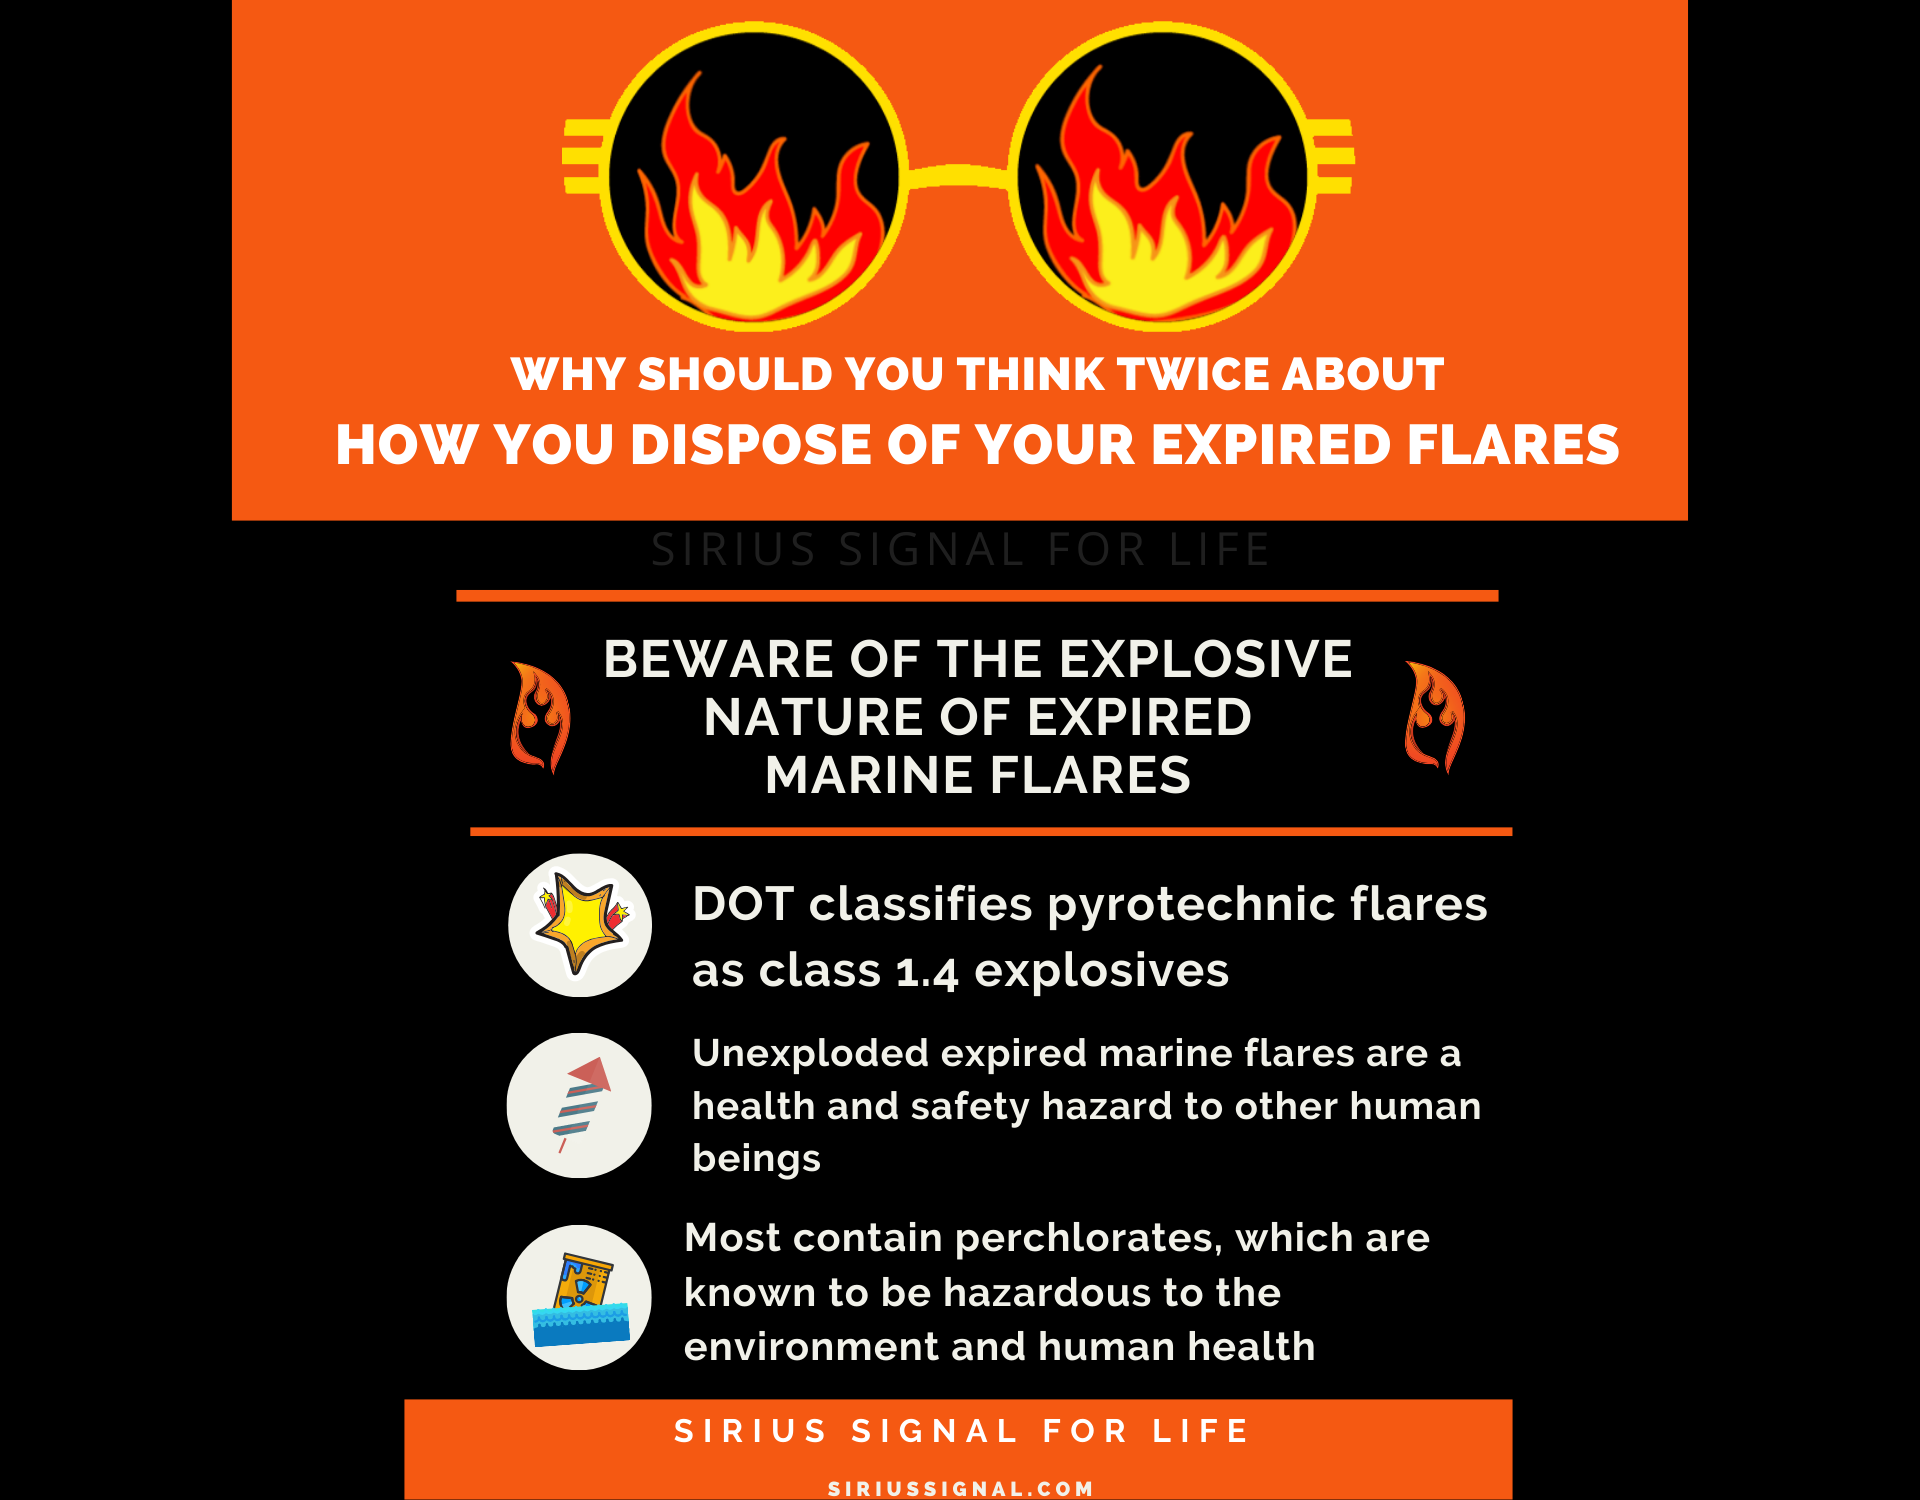 Dangers of Improper Disposal of Marine Flares Infographic